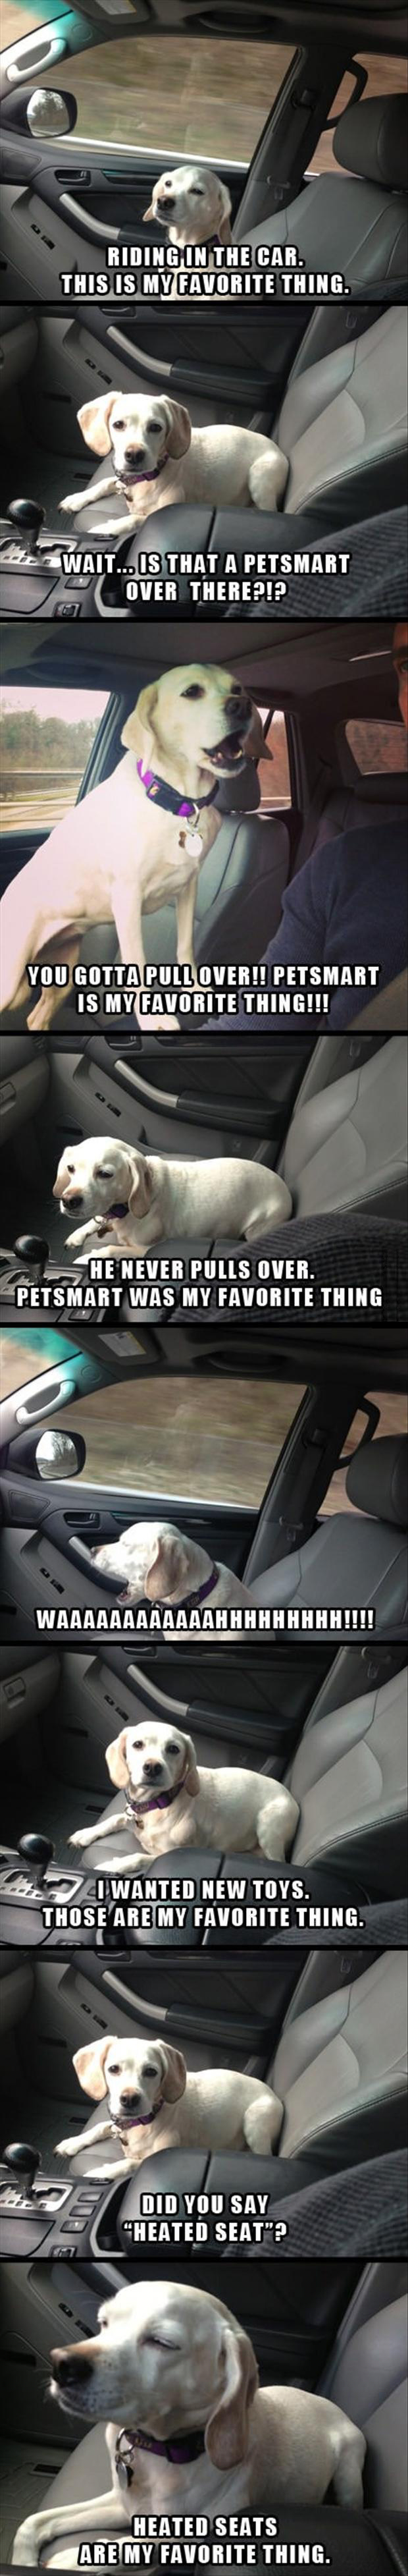 z funny pictures, dog in the car